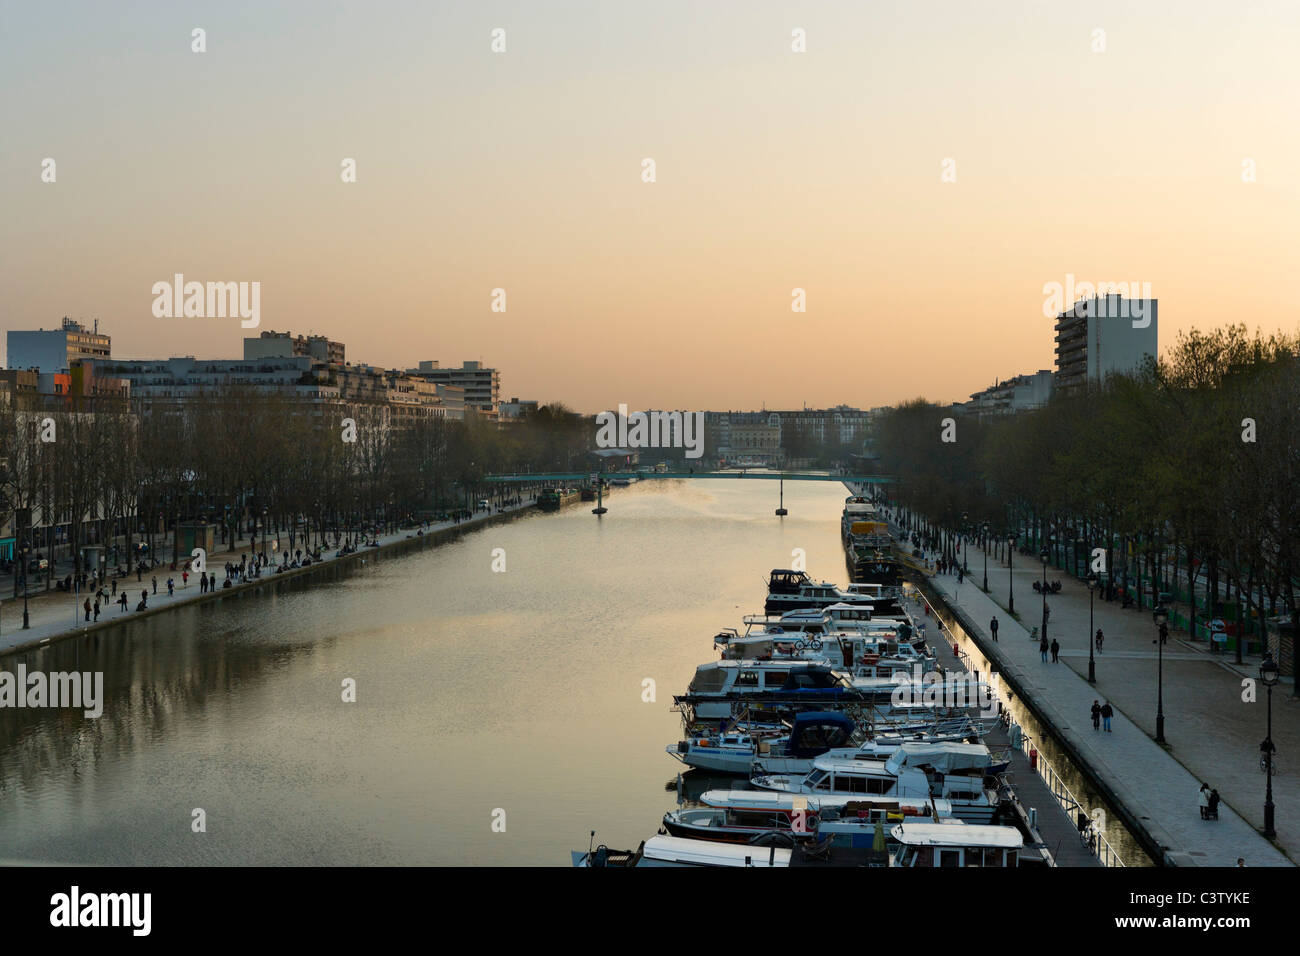 Sunset in the Bassin de la Villette viewed from a balcony in the Holiday Inn Express, Paris, France. - Stock Image